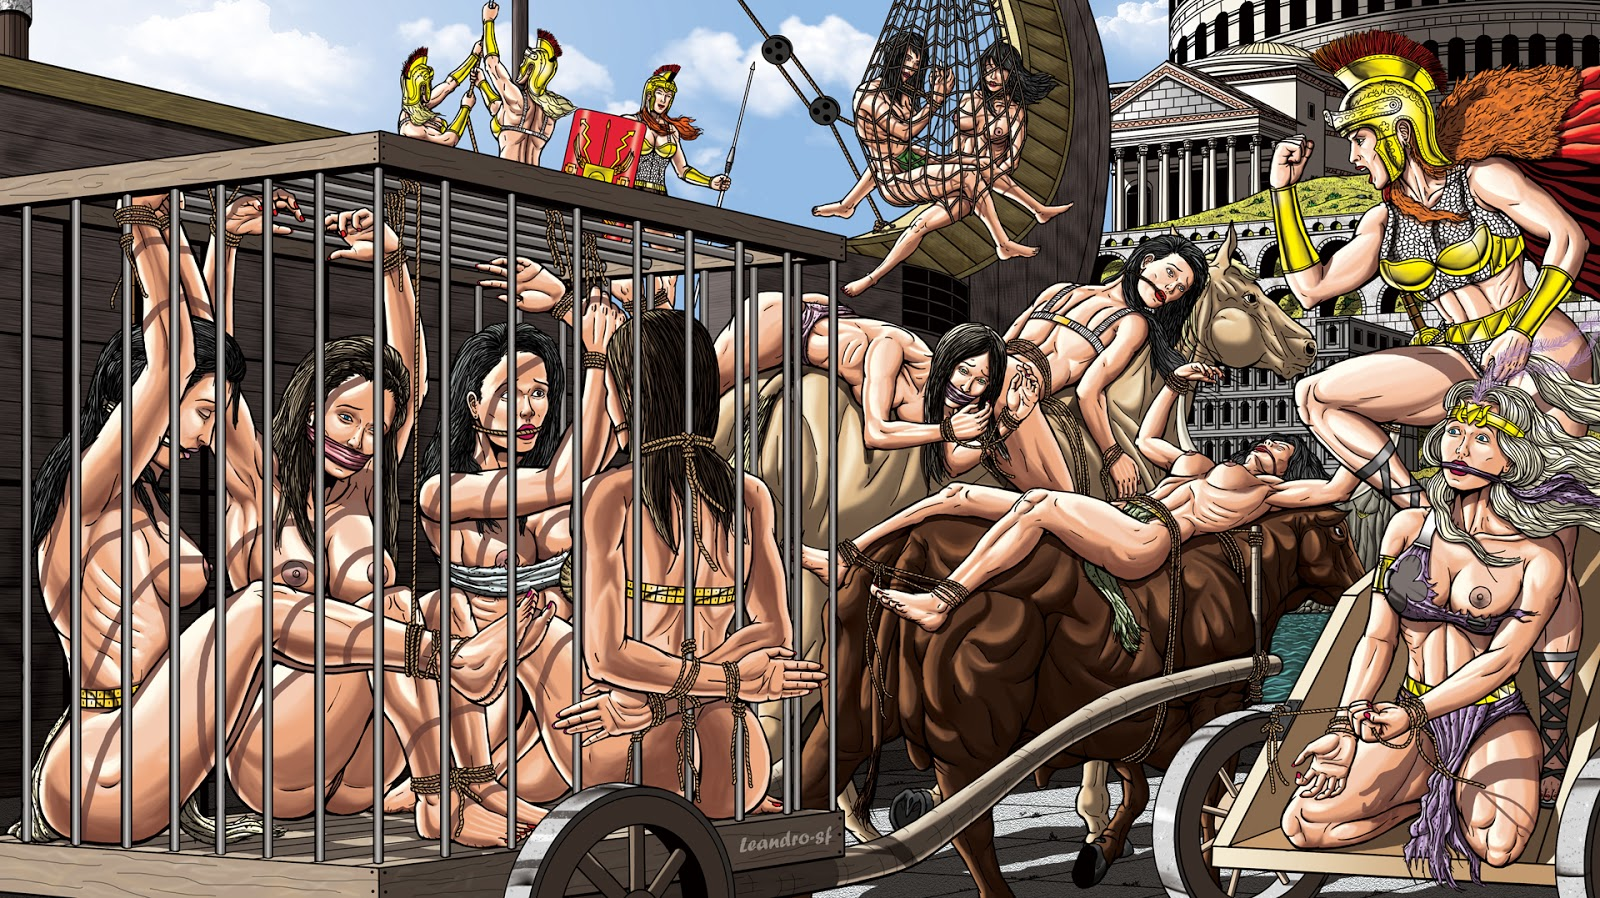 Drawing erotic slave auction porno gallery